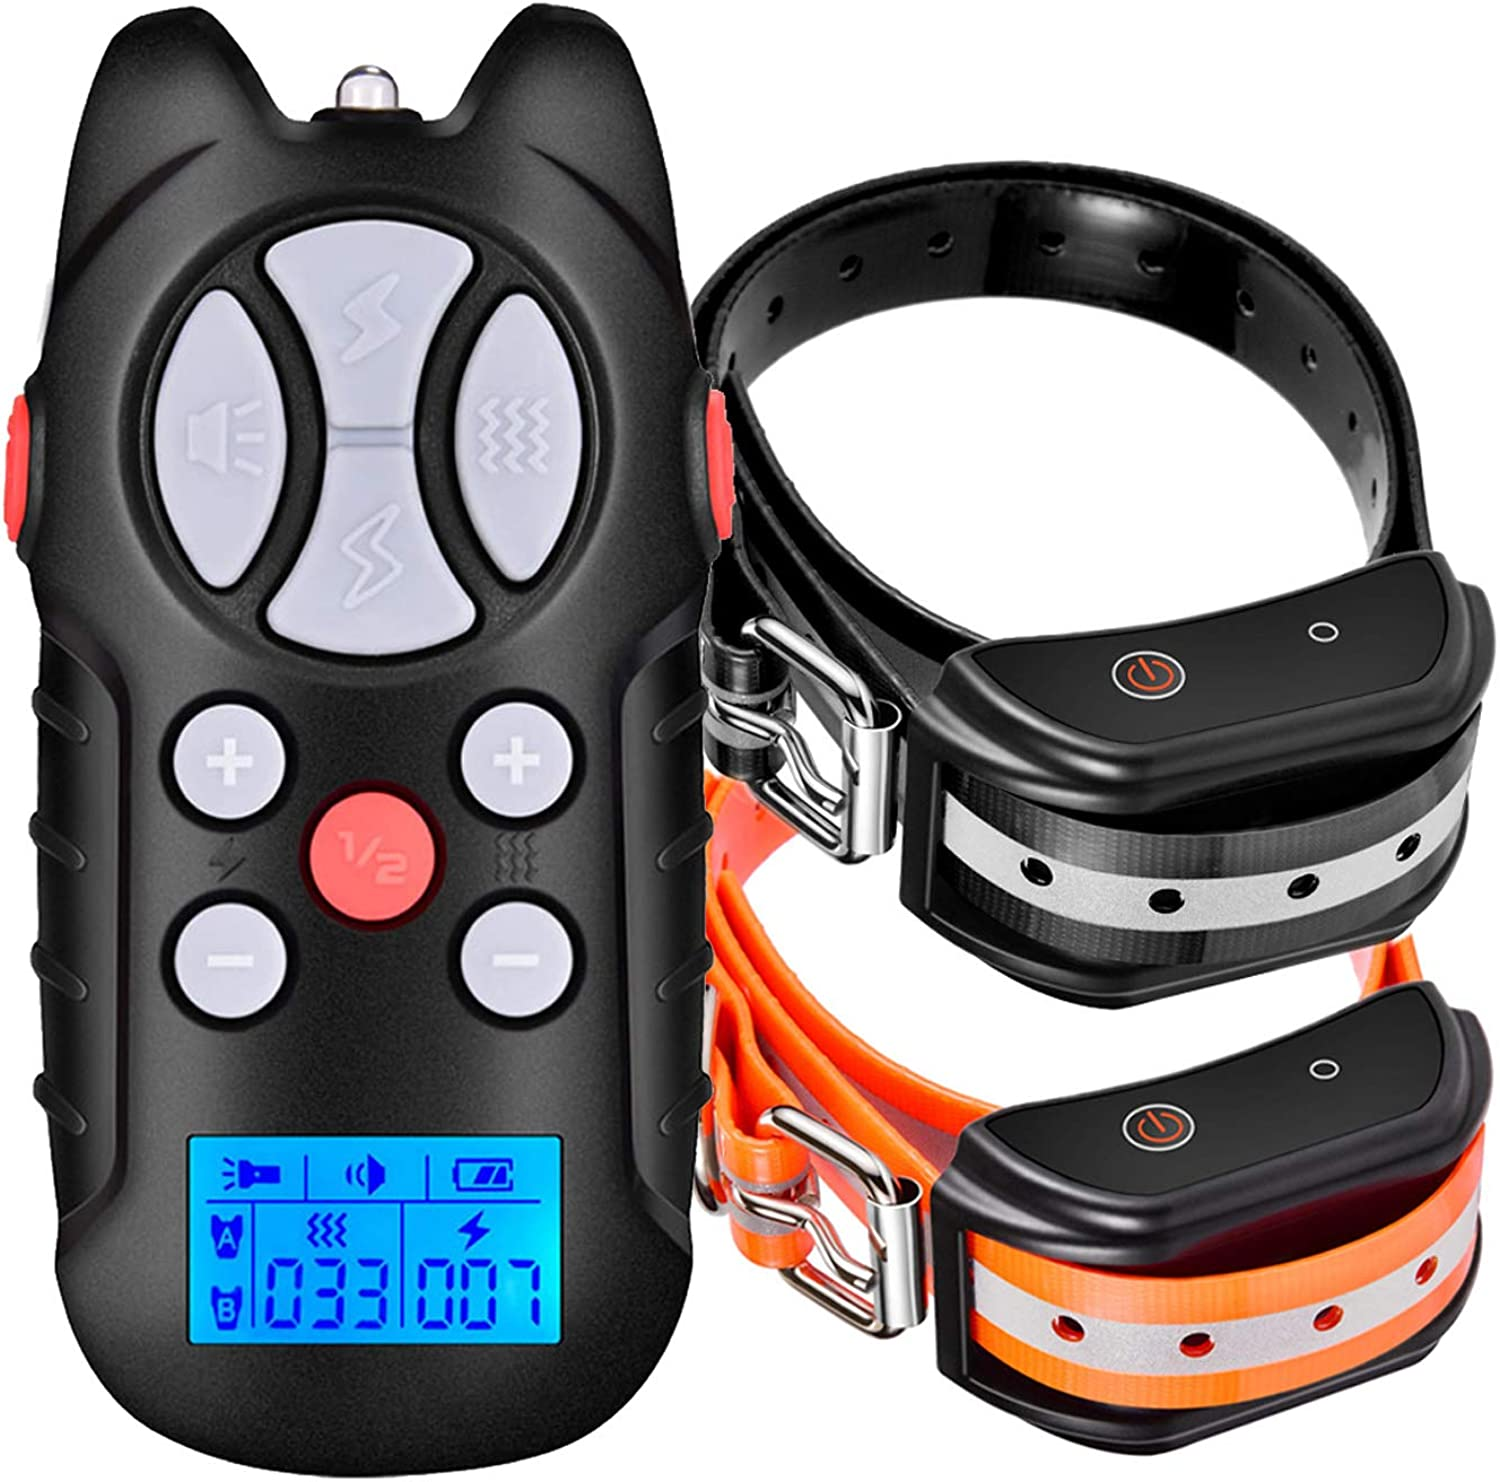 Havenfly Dog Training Collar with beep, Vibration Remote Control and Light, Rechargeable and Waterproof Adjustable Dog Collar Trainer for 2 Dogs